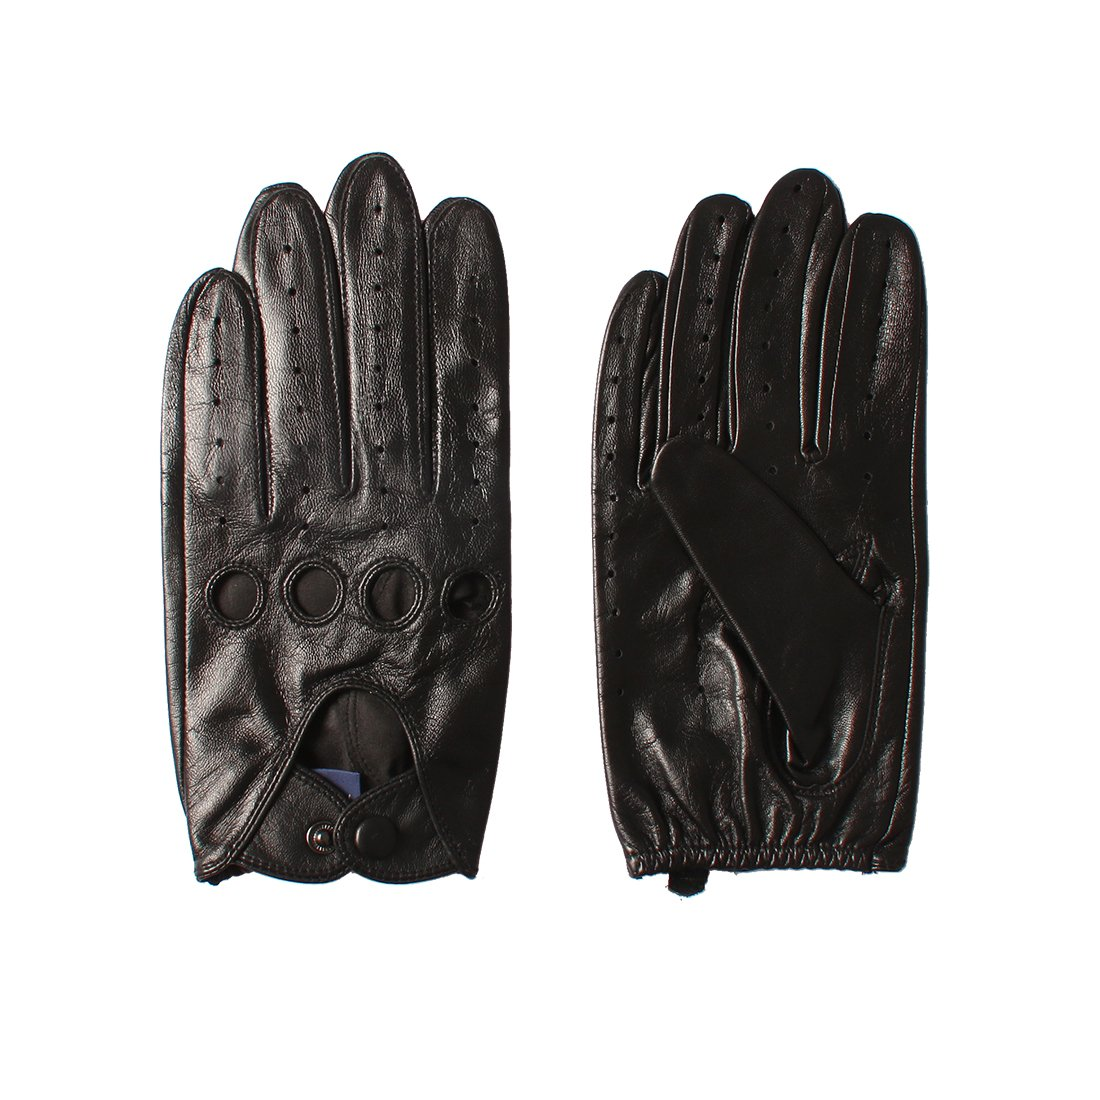 Nappaglo Men's Driving Leather Gloves Classic Lambskin Full-finger Open Back Unlined Gloves for Riding Cycling Motorcycle (S (Palm Girth:up to 8''), Black (Touchscreen))